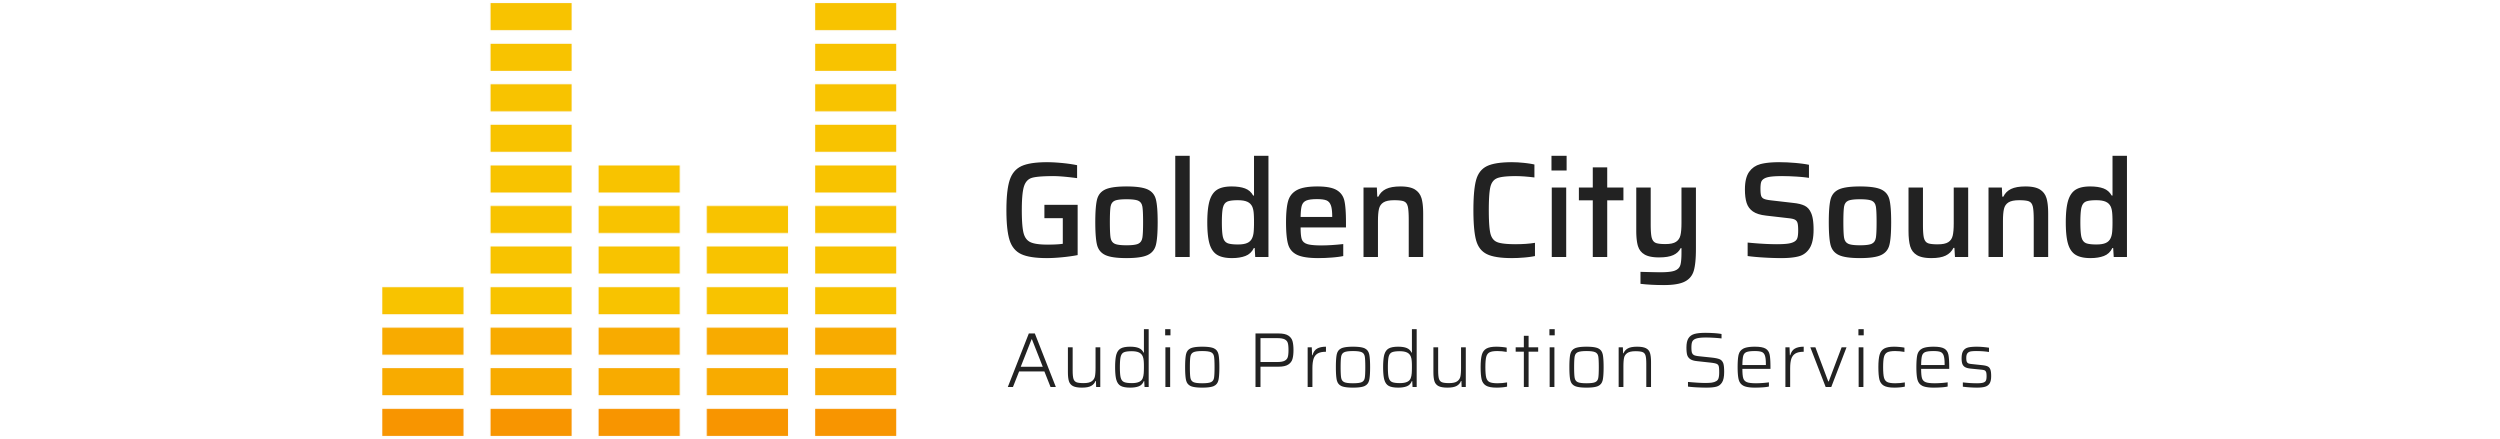 Golden City Sound | Audio Production Services